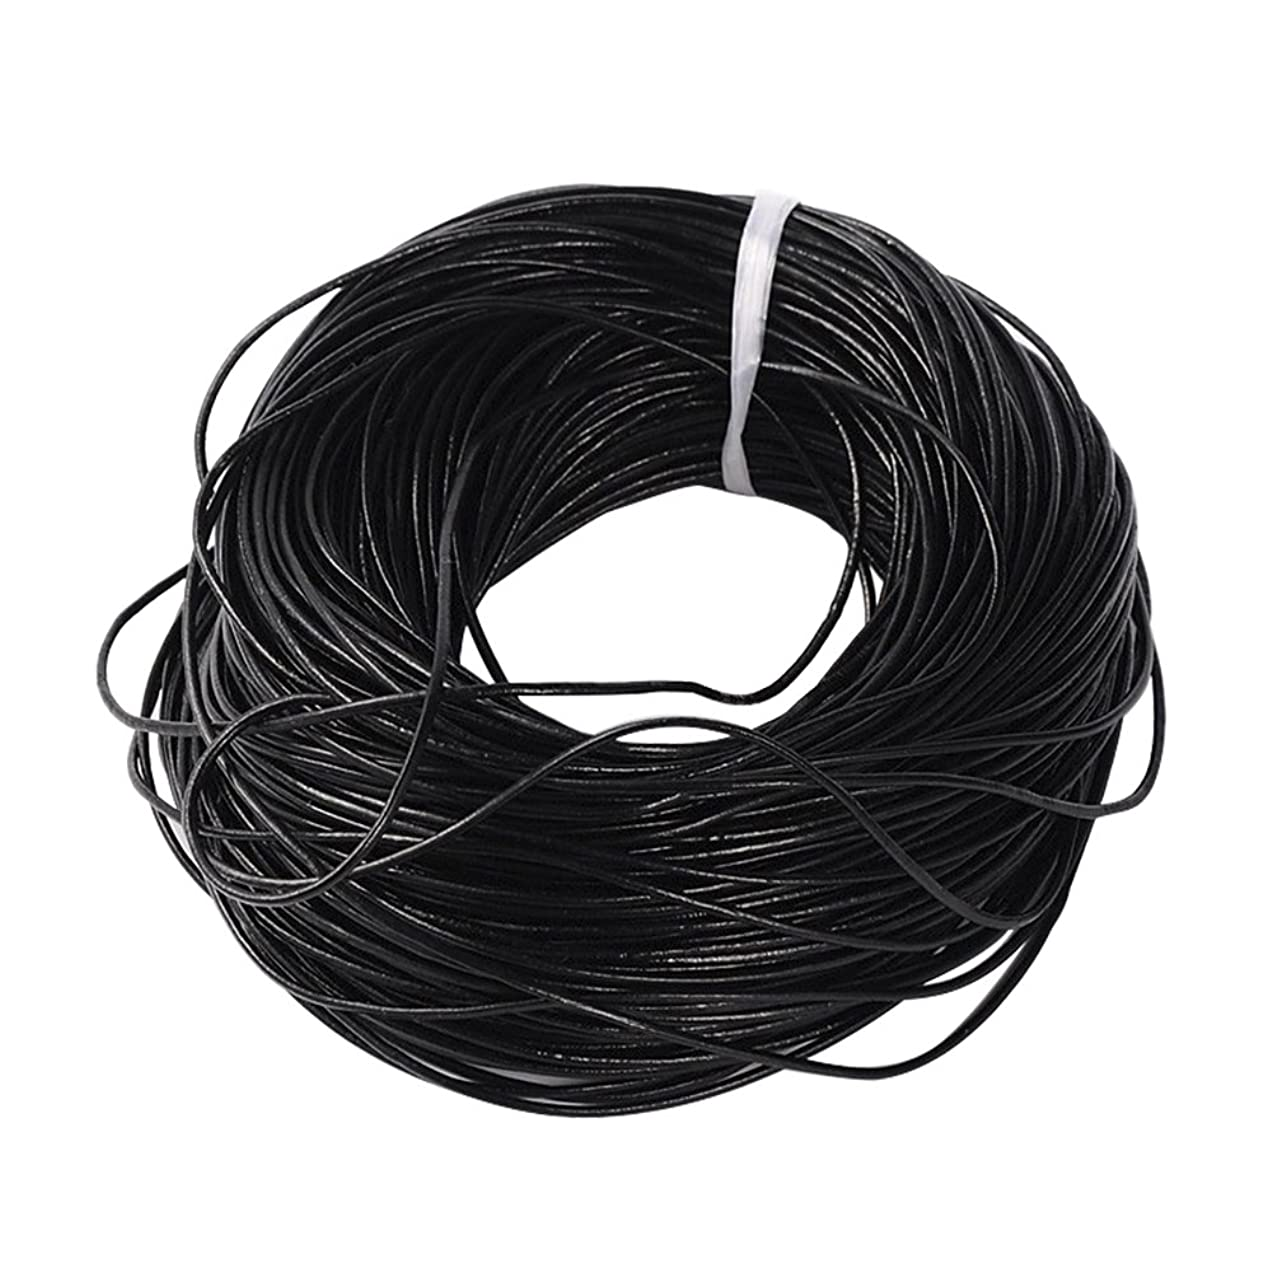 NBEADS 100m Cowhide Leather Cord, Leather Jewelry Cord, Jewelry DIY Making Material, Round, Black, 2mm